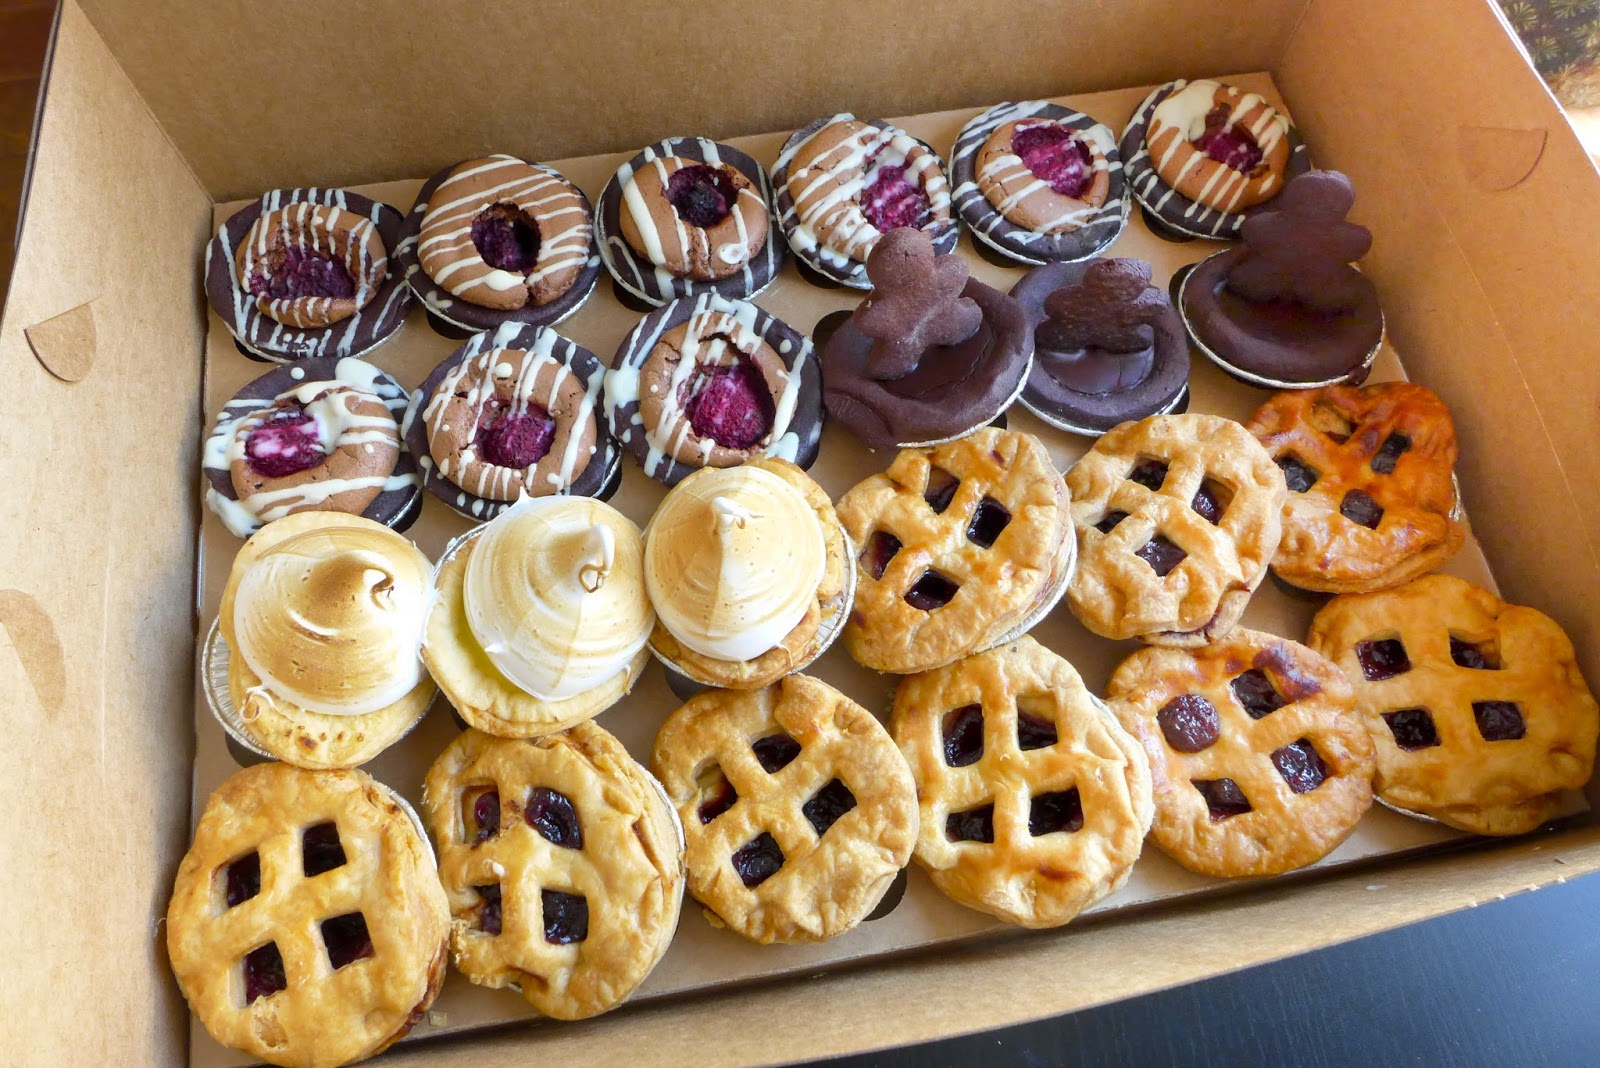 Rustique Pie Kitchen - Chocolate Raspberry, Lemon Meringue, Cherry Pie, Chocolate Orange